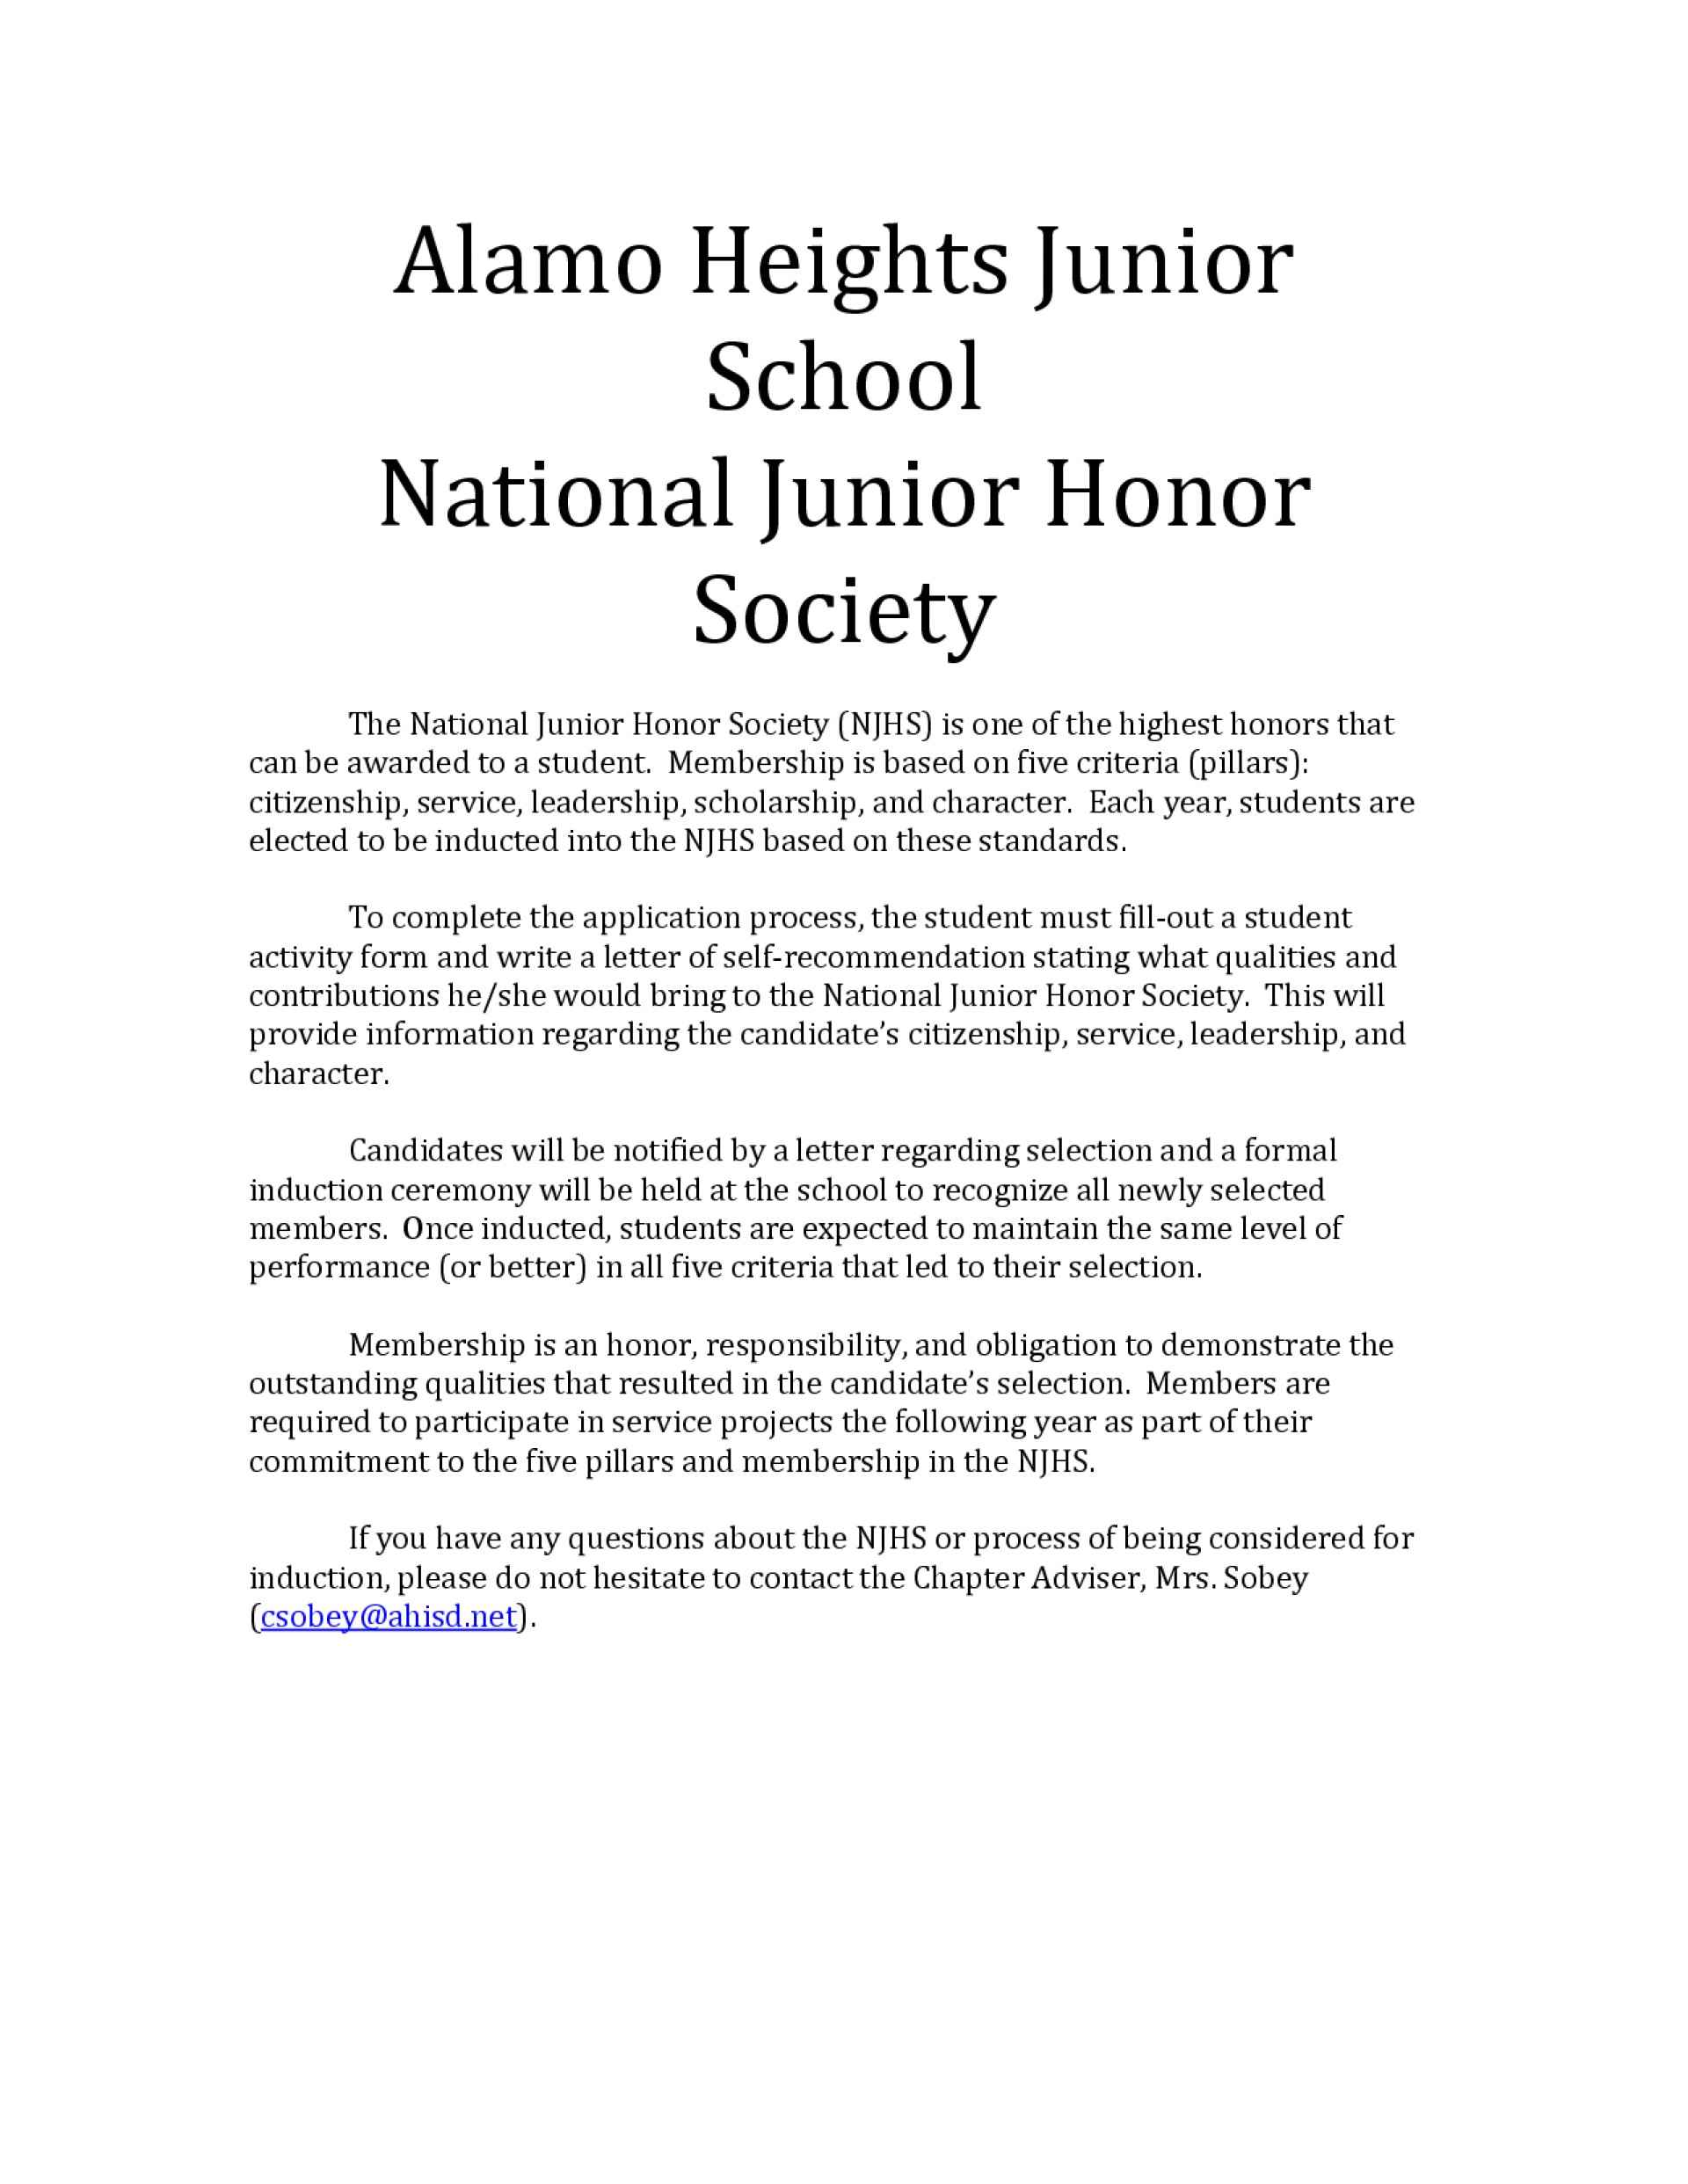 006 Essay Example National Junior Honor Society Unusual Samples 1920